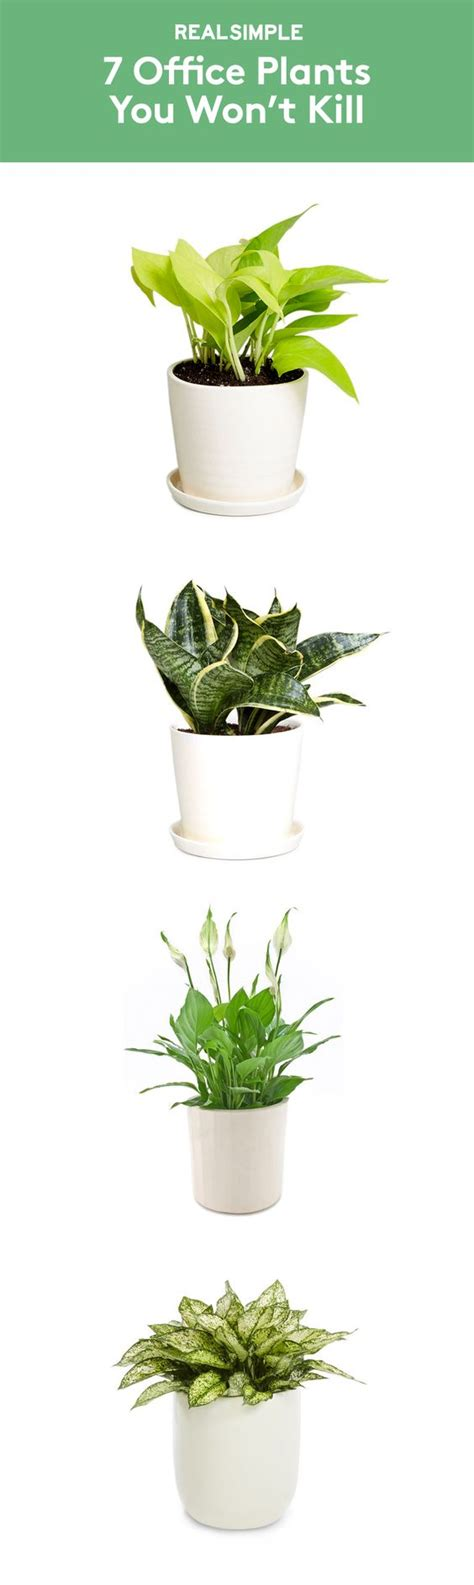 best office plant 7 office plants you won t kill kantoren planten en